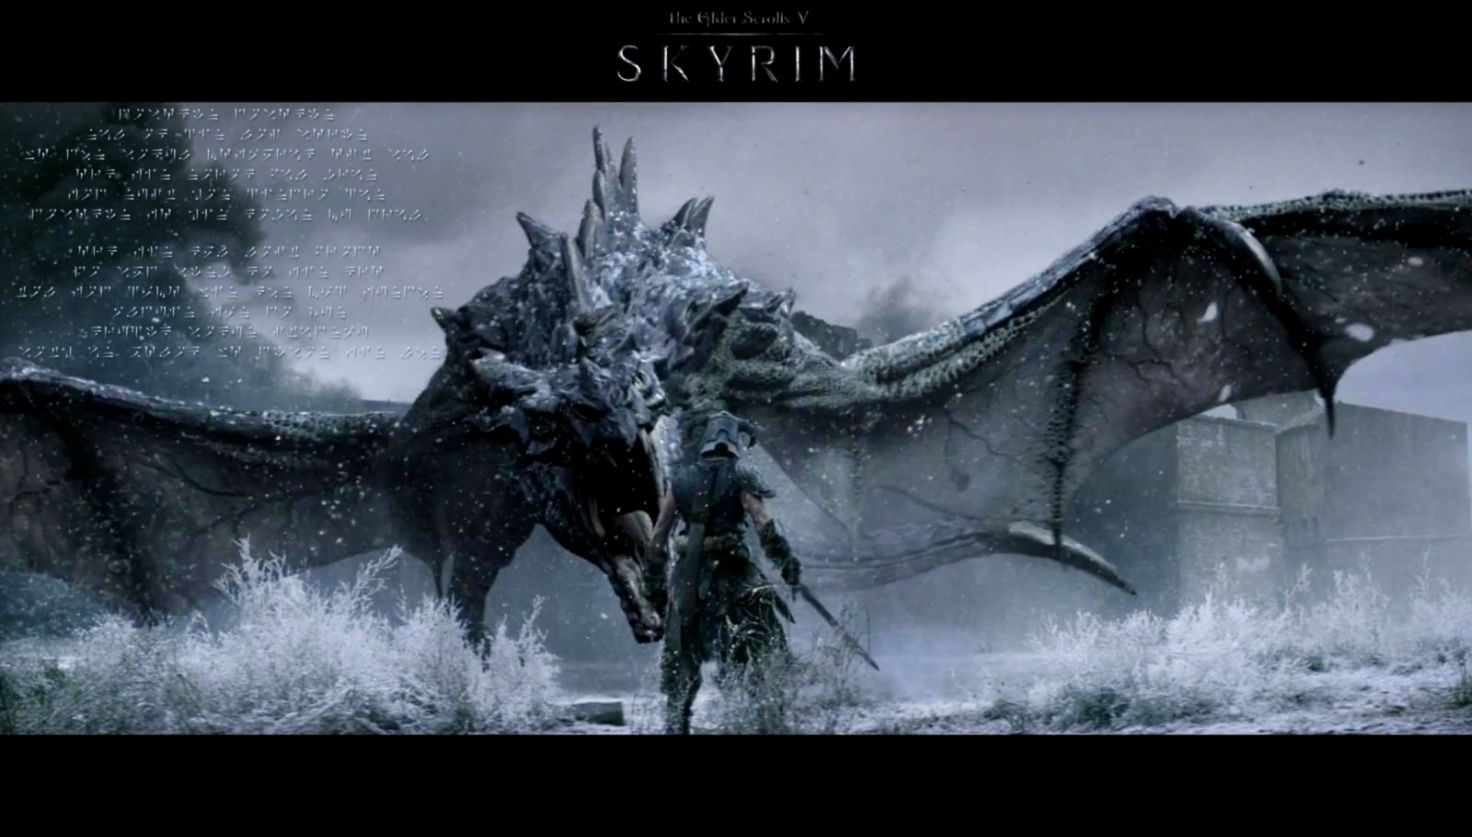 Skyrim Desktop Wallpaper Best Hd Wallpapers